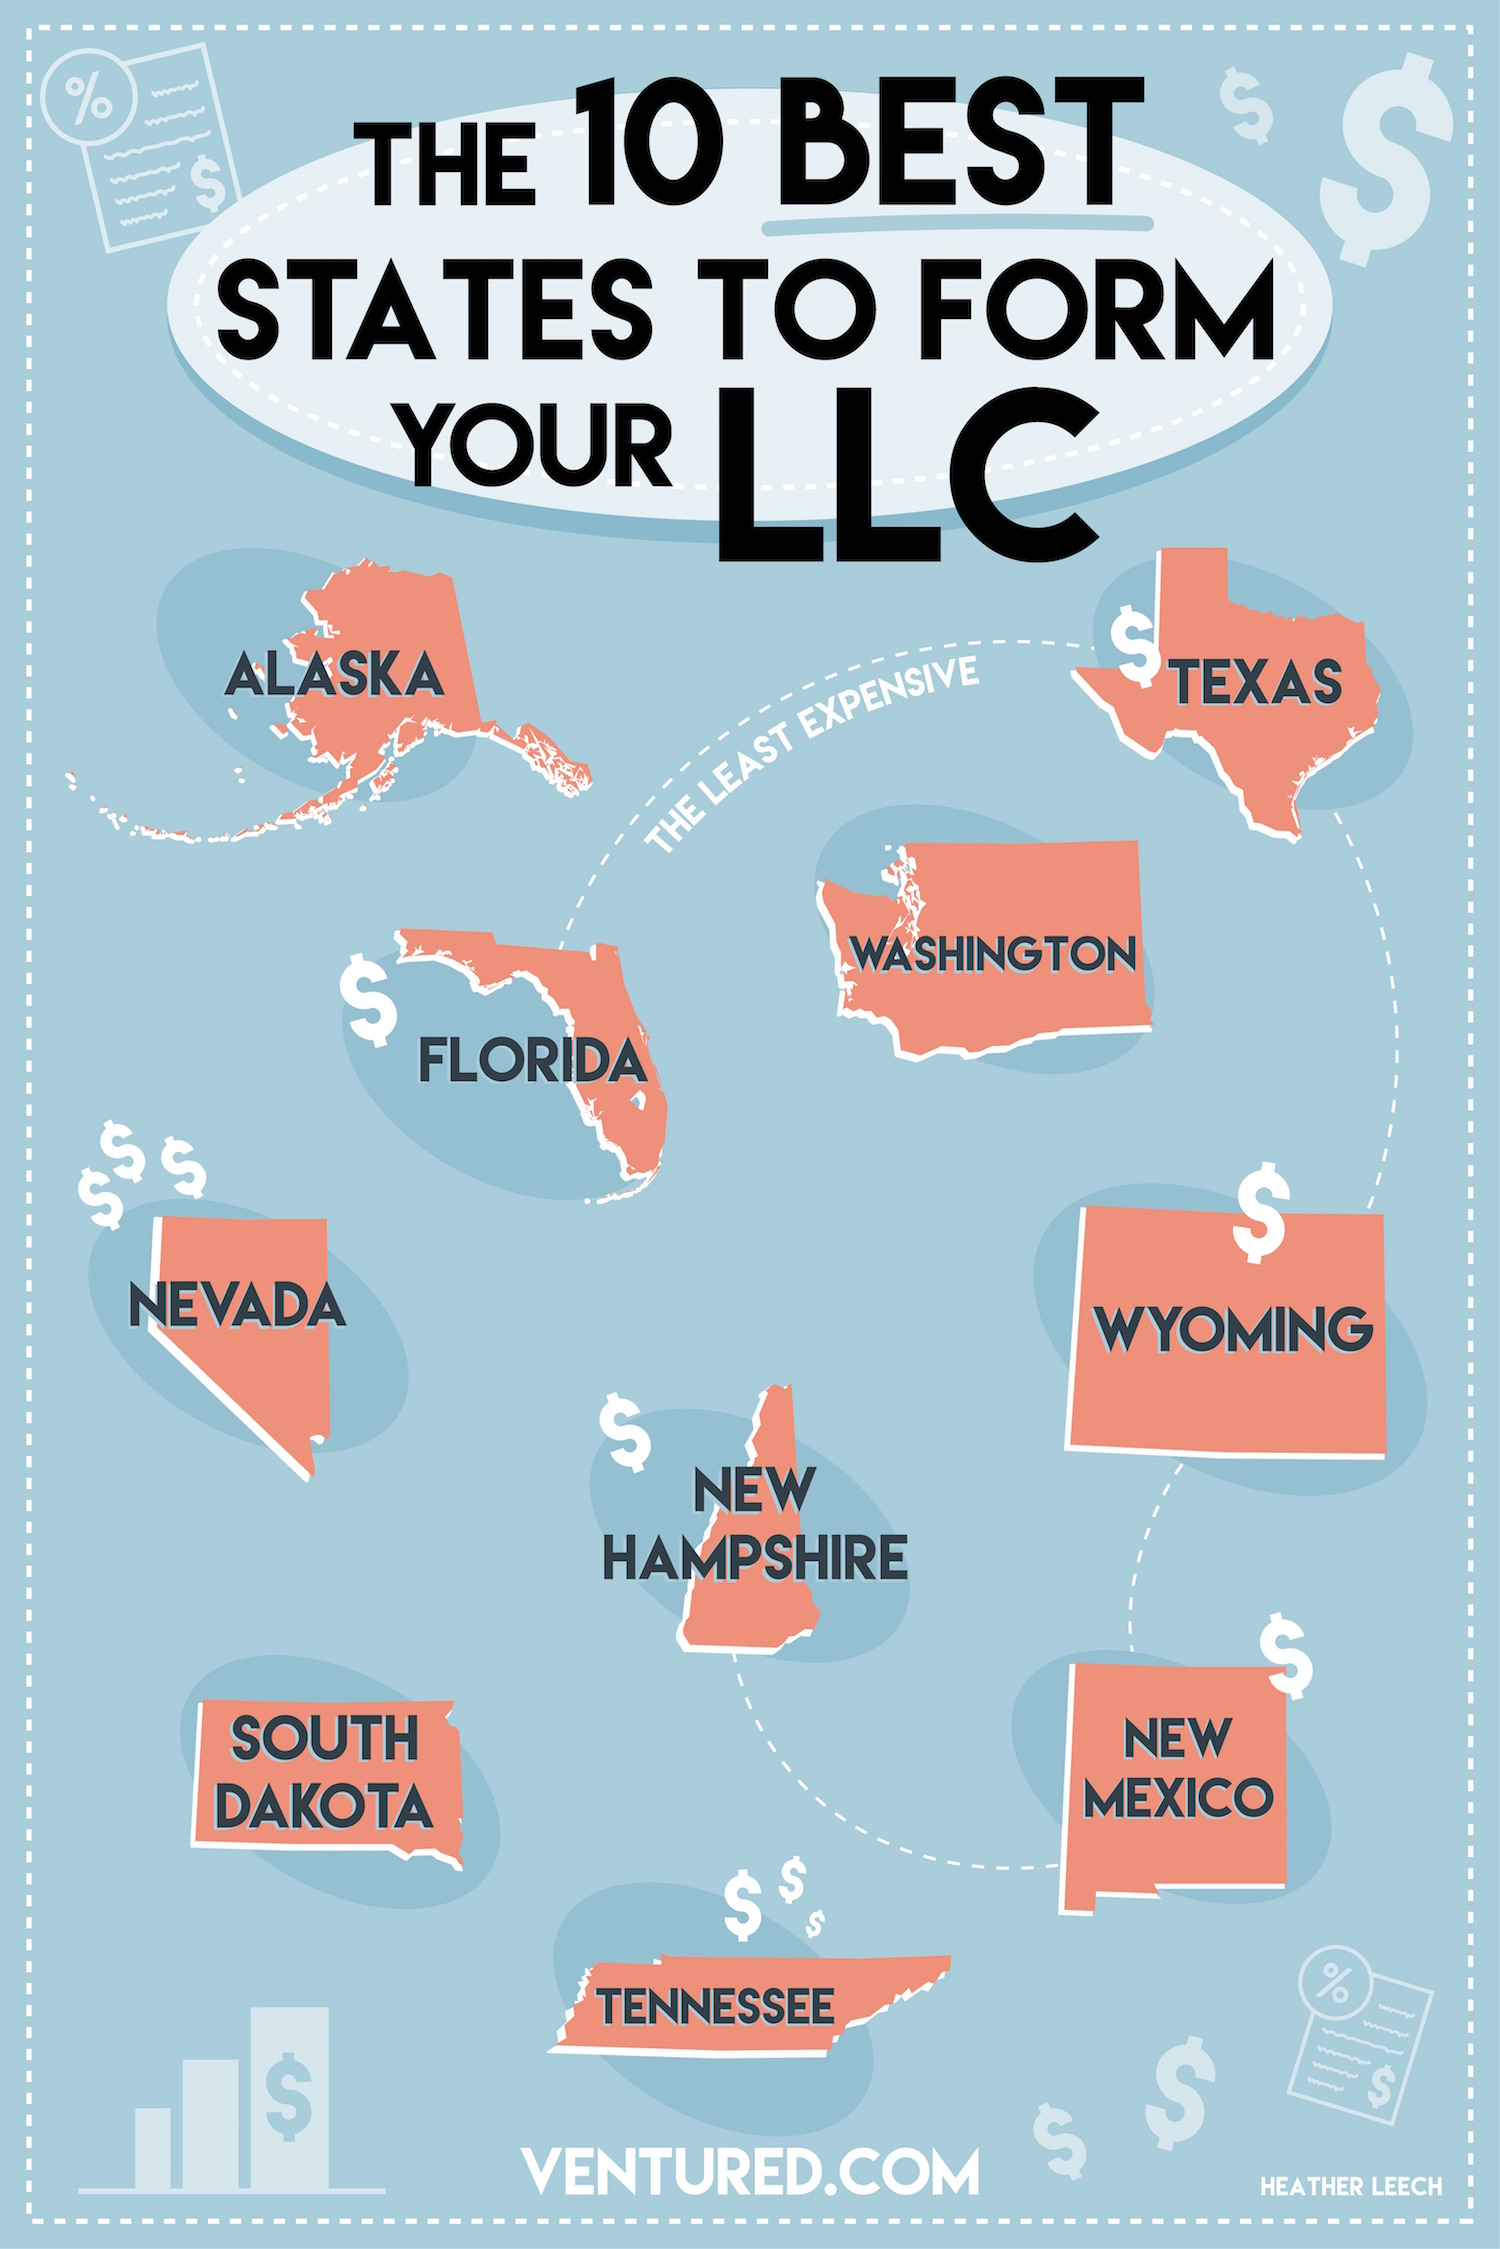 best states to form an LLC infographic